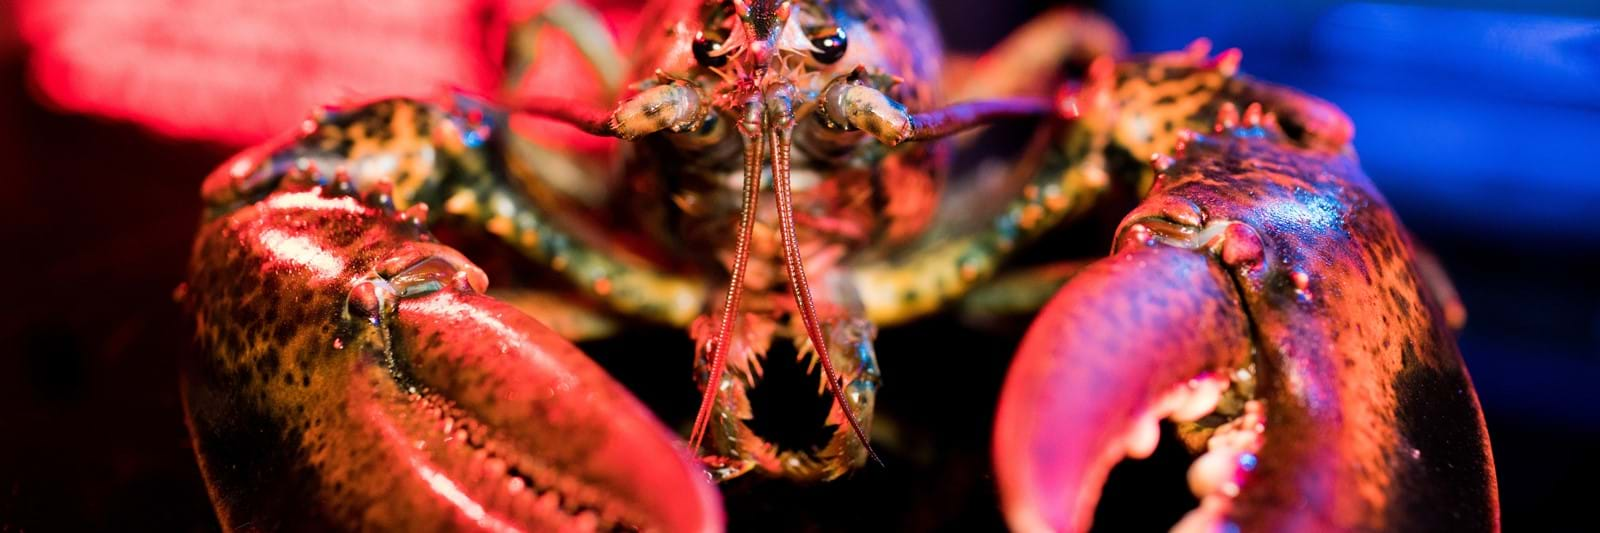 Close Up Of A Lobster